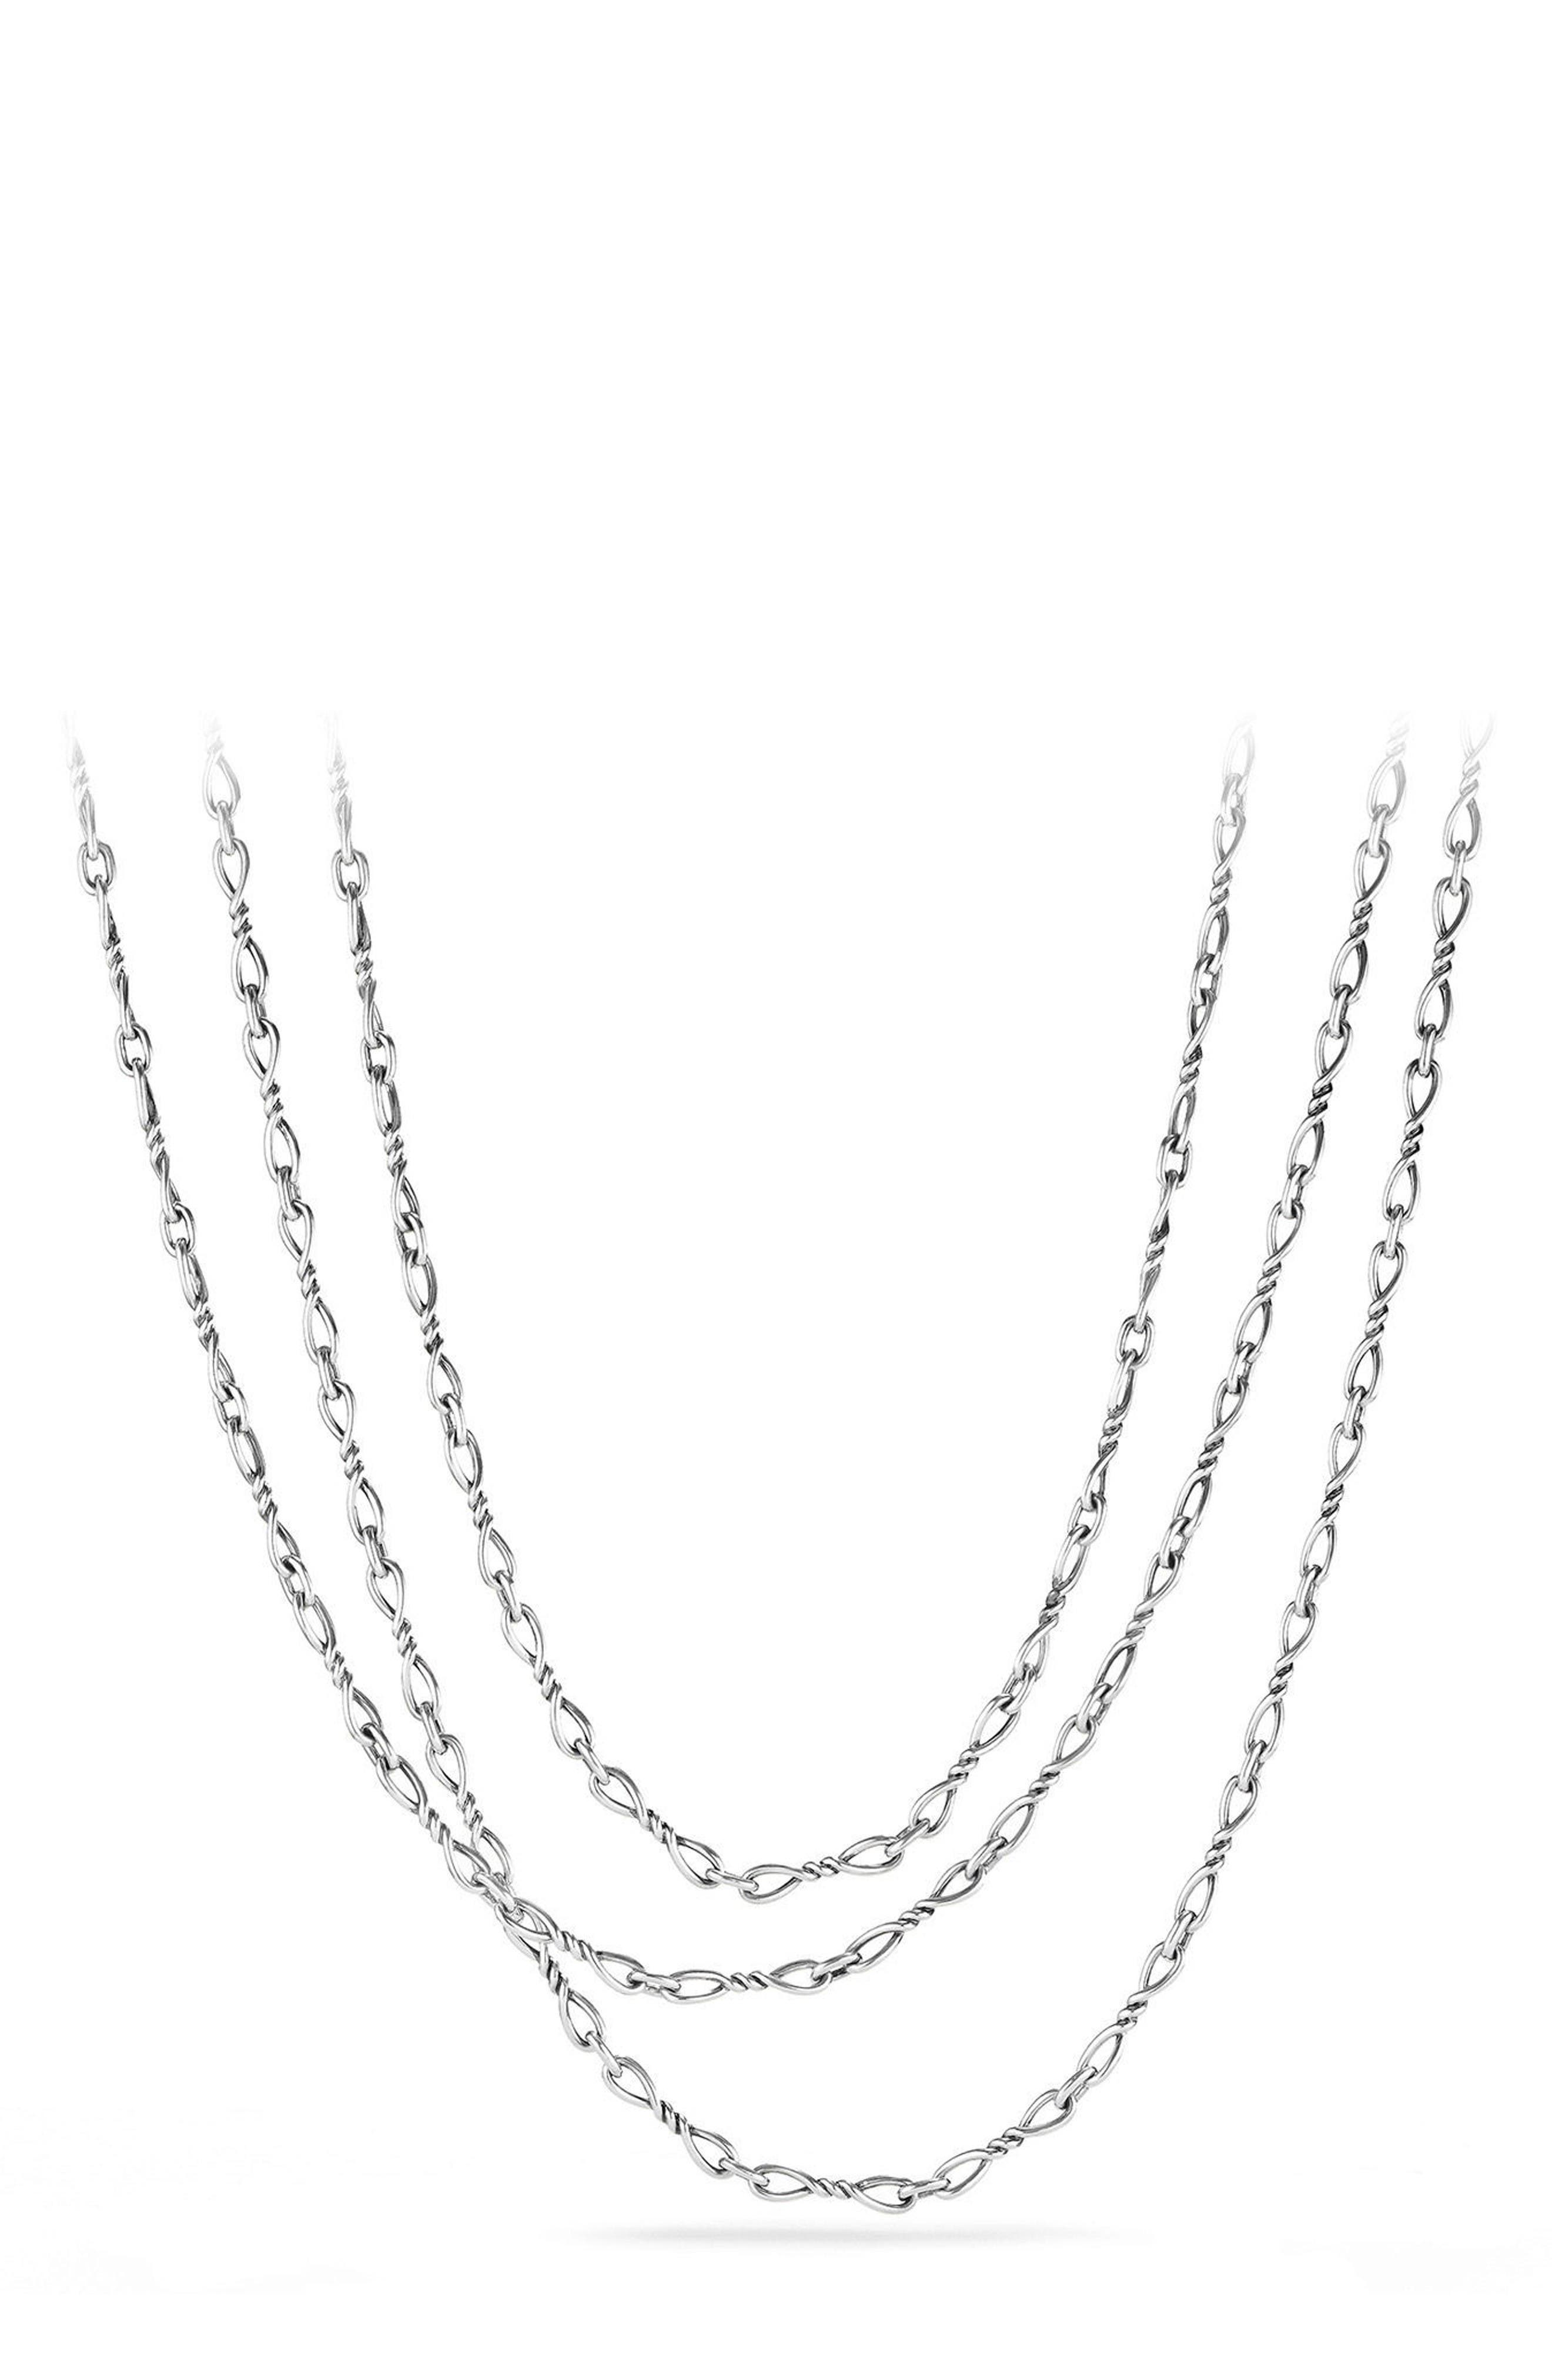 Continuance Chain Necklace,                             Main thumbnail 1, color,                             Silver